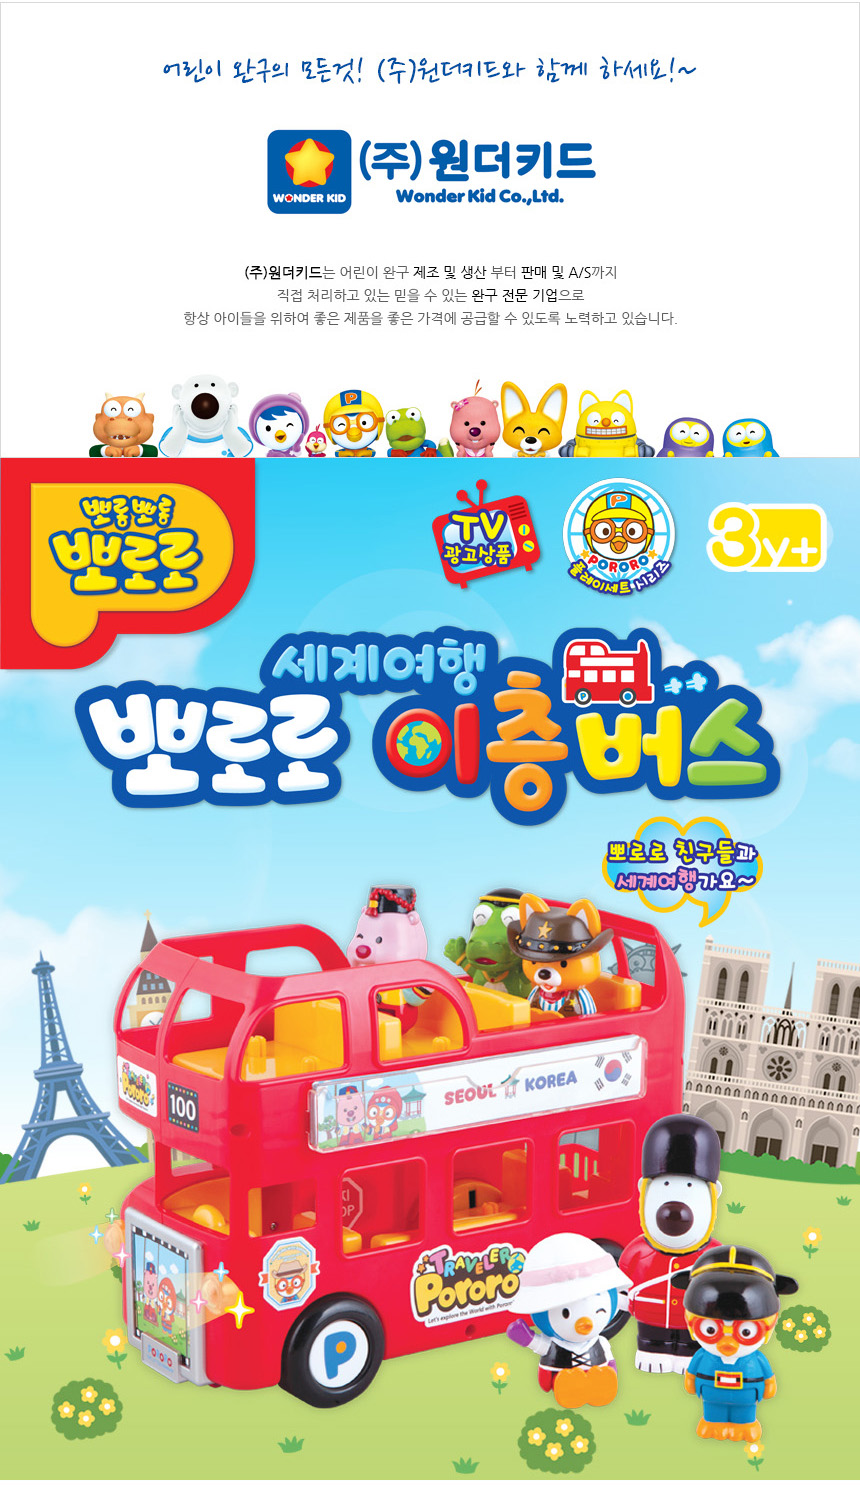 pororo_travel_bus_01.jpg